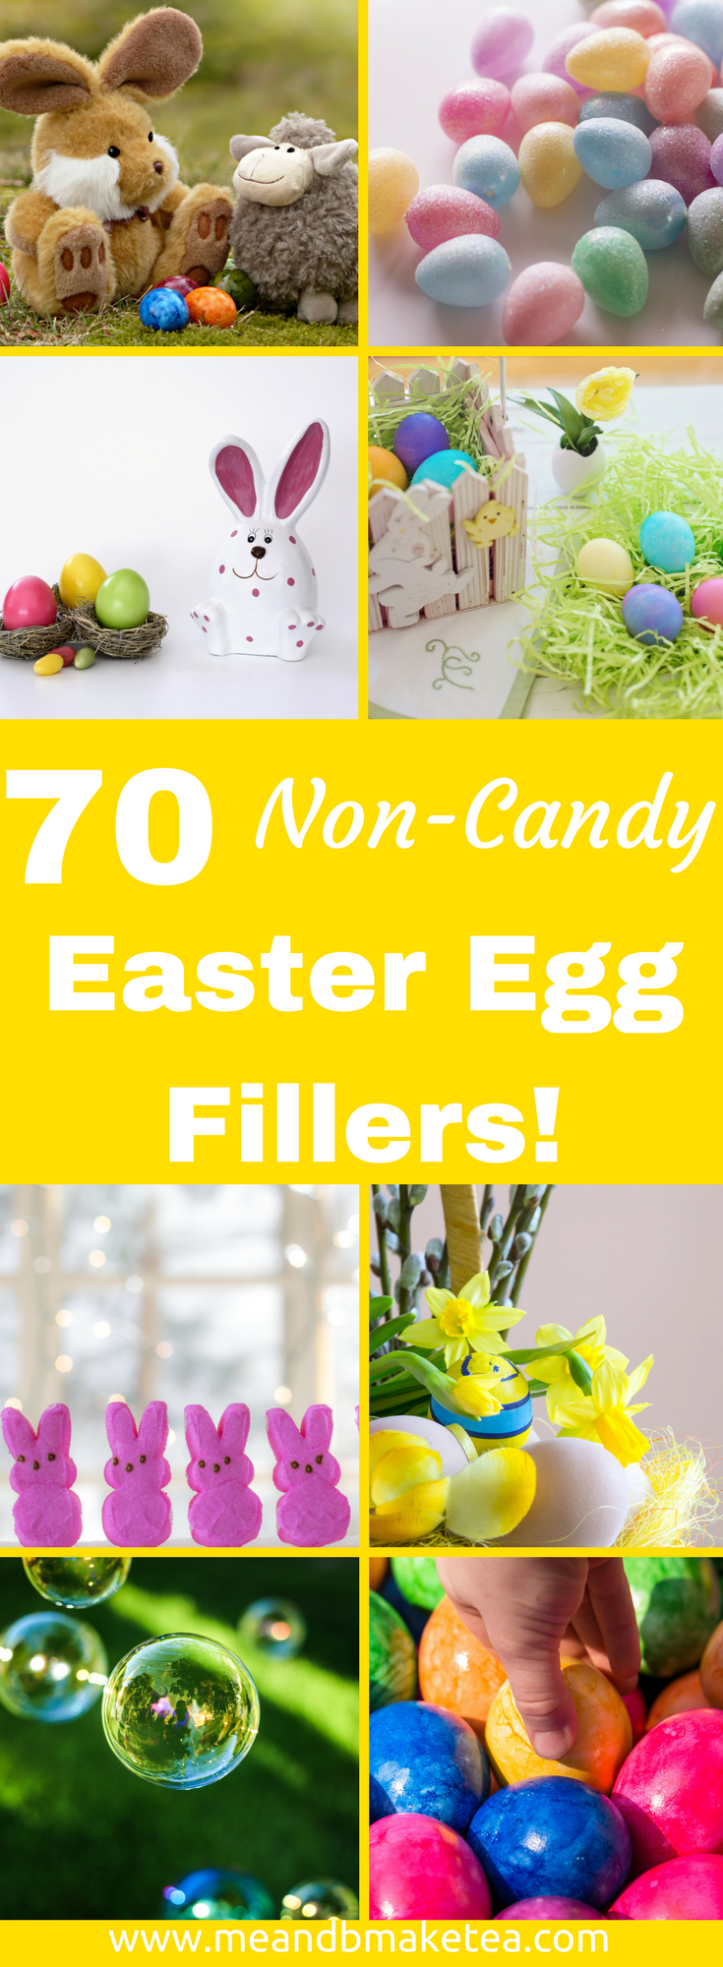 70 Non-Candy Plastic Easter Egg Fillers for Kids that are cheap and easy pinterest thumbnail